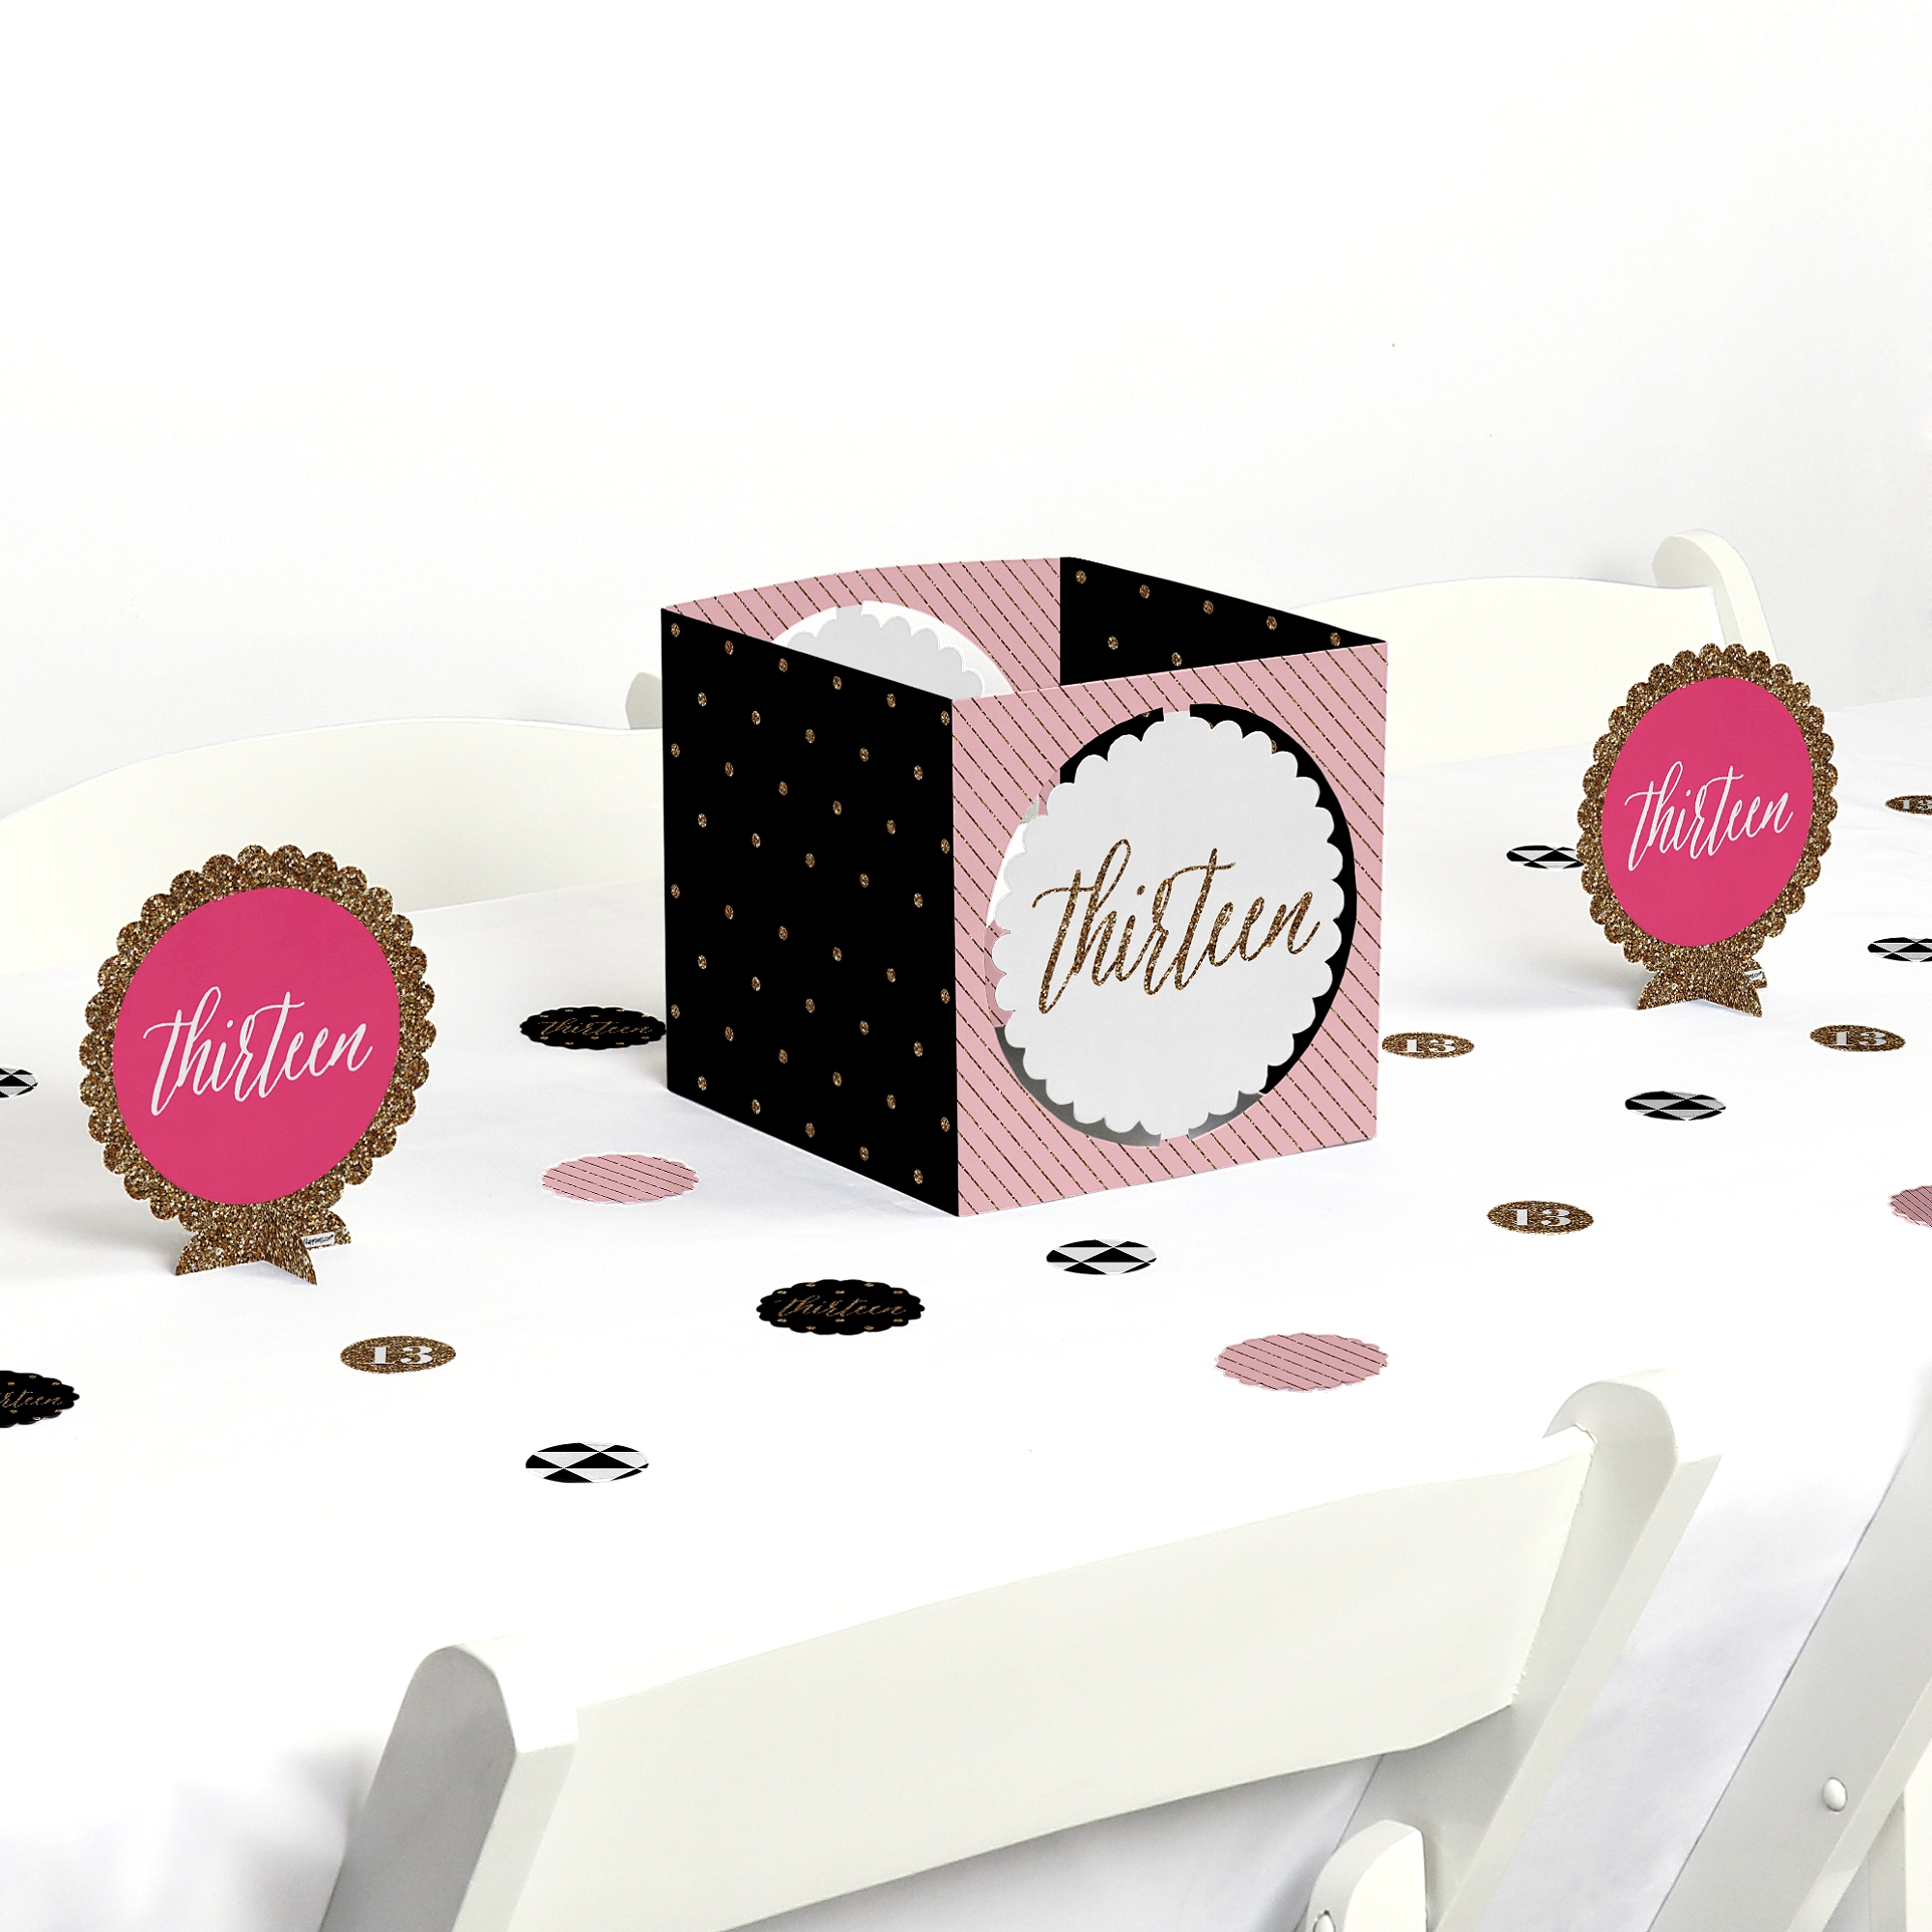 Chic 13th Birthday - Pink, Black and Gold - Birthday Party Centerpiece & Table Decoration Kit